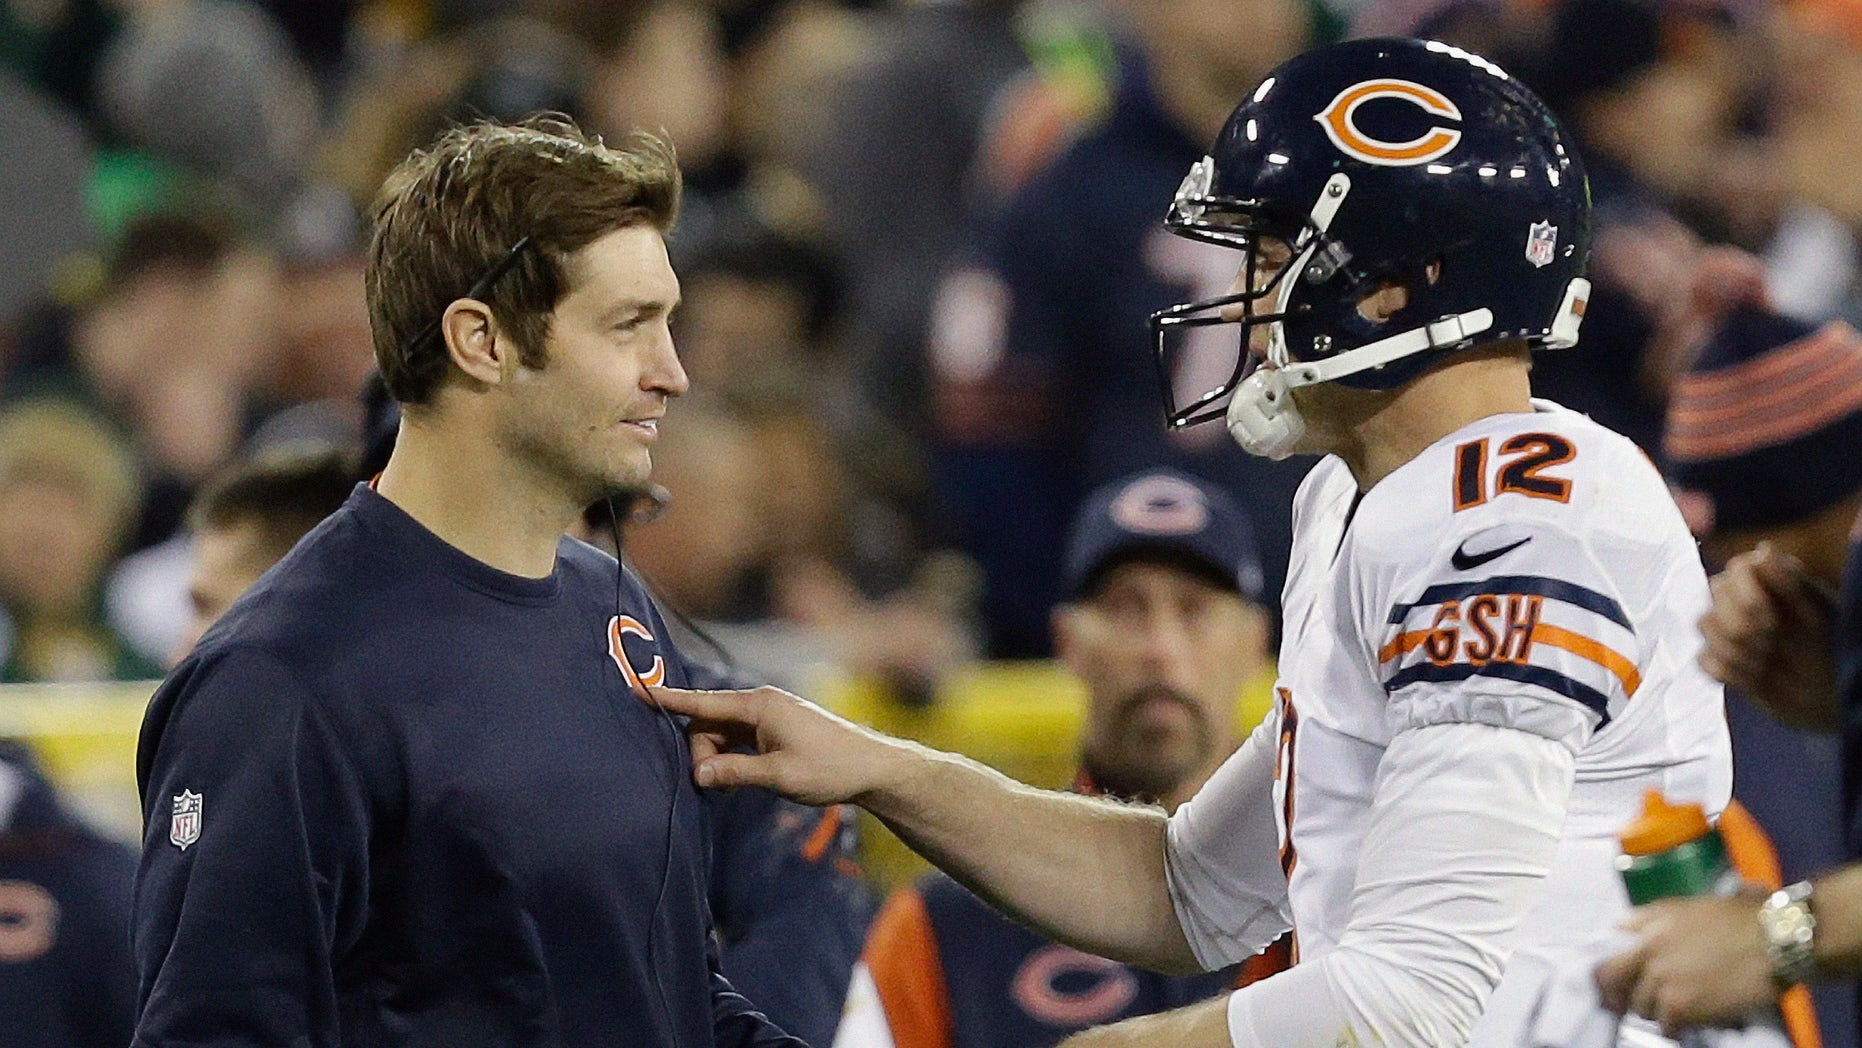 Chicago Bears quarterback Josh McCown (12) talks to Jay Cutler during the first half of an NFL football game against the Green Bay Packers Monday, Nov. 4, 2013, in Green Bay, Wis. (AP Photo/Mike Roemer)